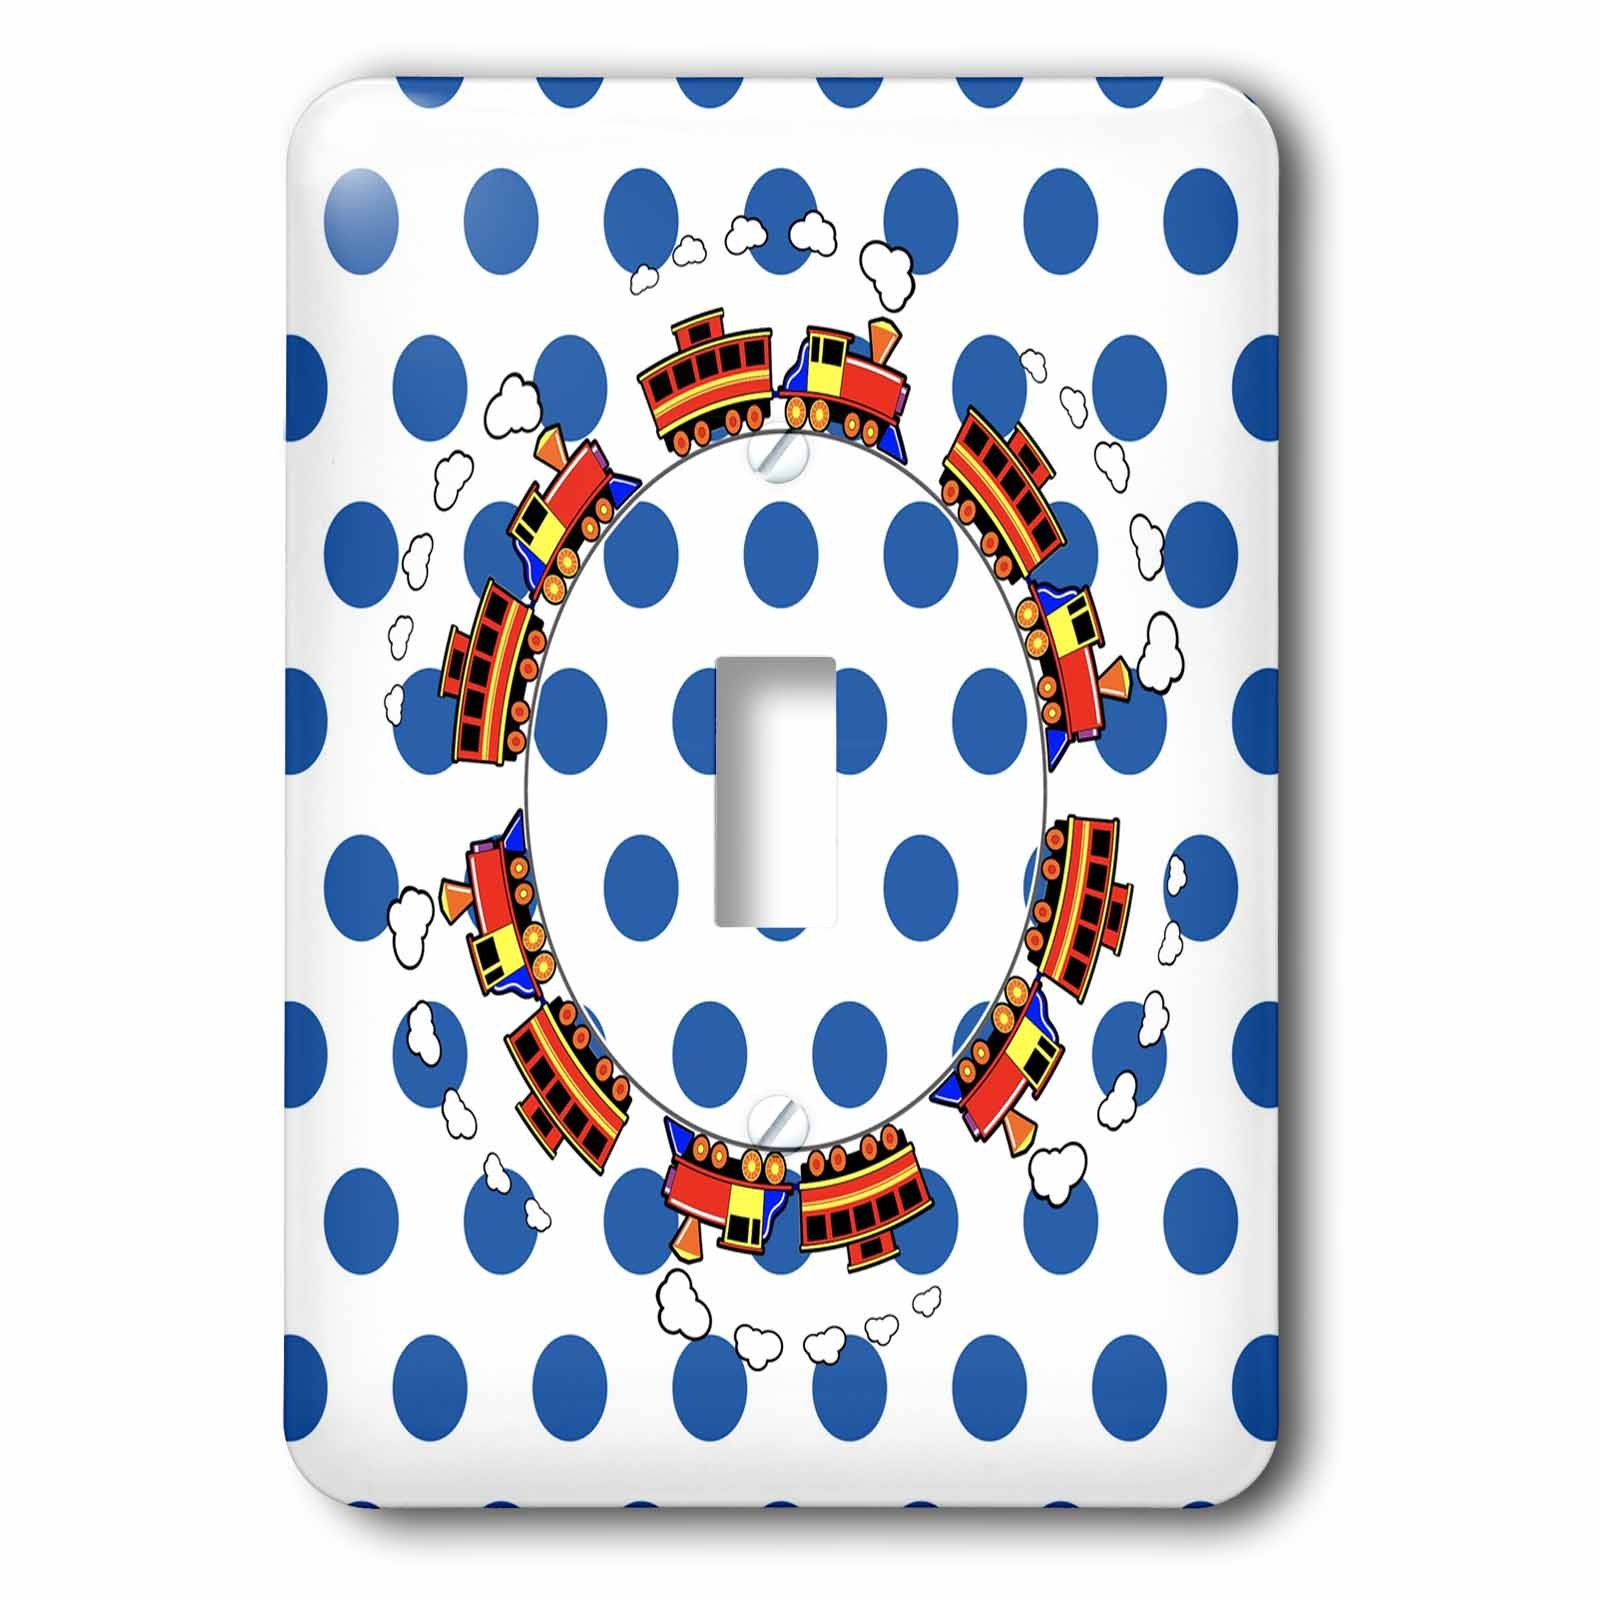 3dRose Childrens Art - Image of Choo Choo Goes Round and Round On Blue Dots - Light Switch Covers - single toggle switch (lsp_281575_1)